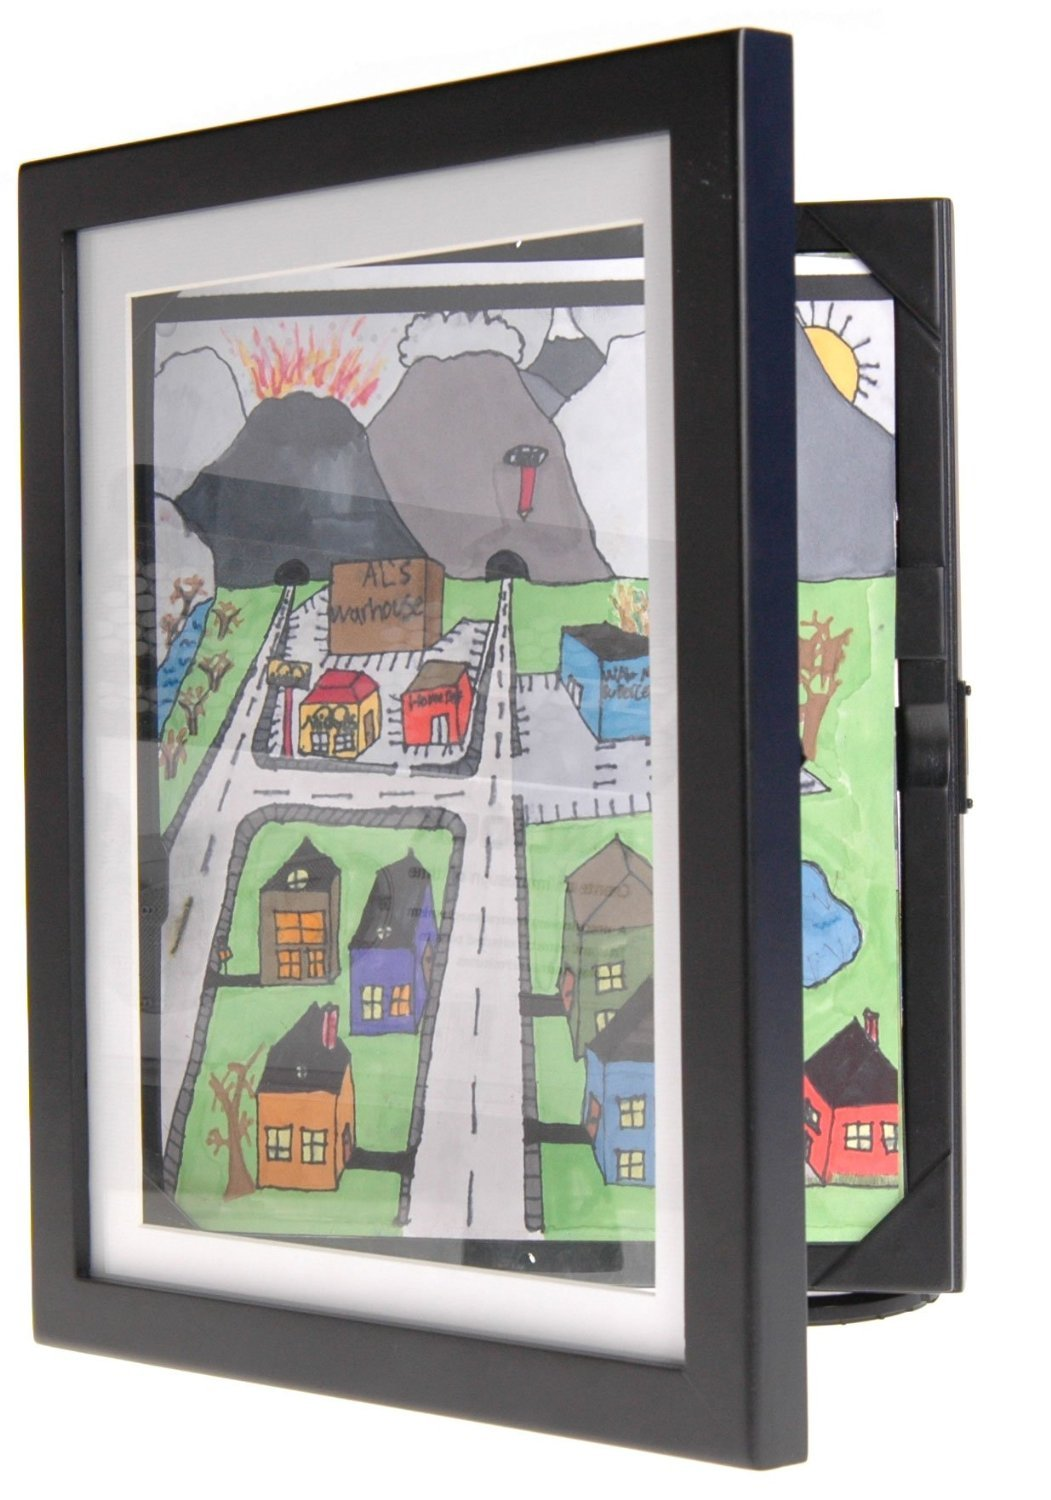 Child Artwork Frame - Display Cabinet Frames And Stores Your Child's Masterpieces - 8.5'' x 11'' (Black)